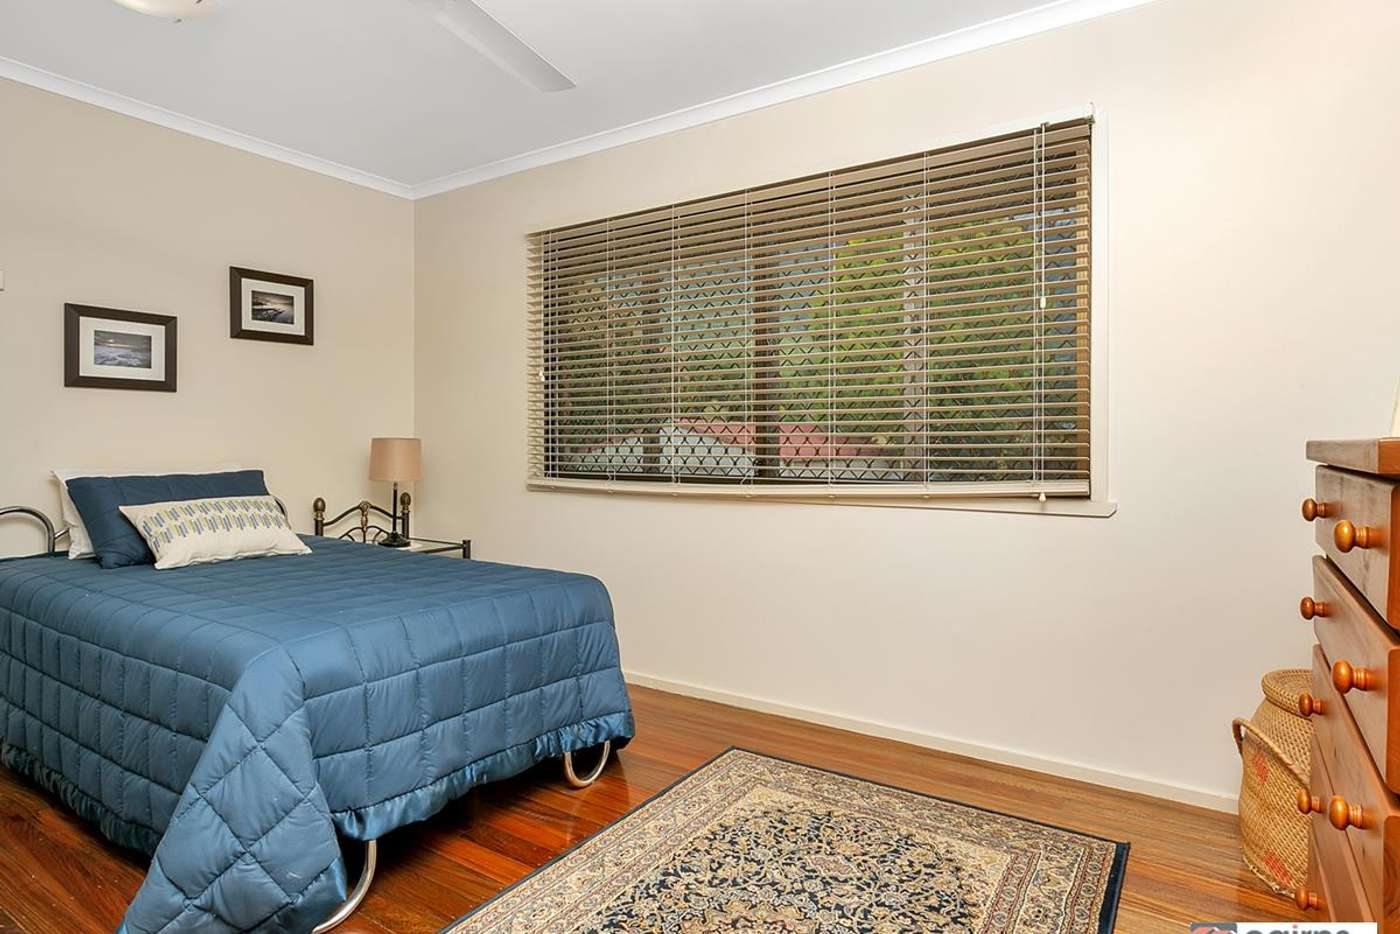 Seventh view of Homely house listing, 190-192 Redlynch Intake Rd, Redlynch QLD 4870